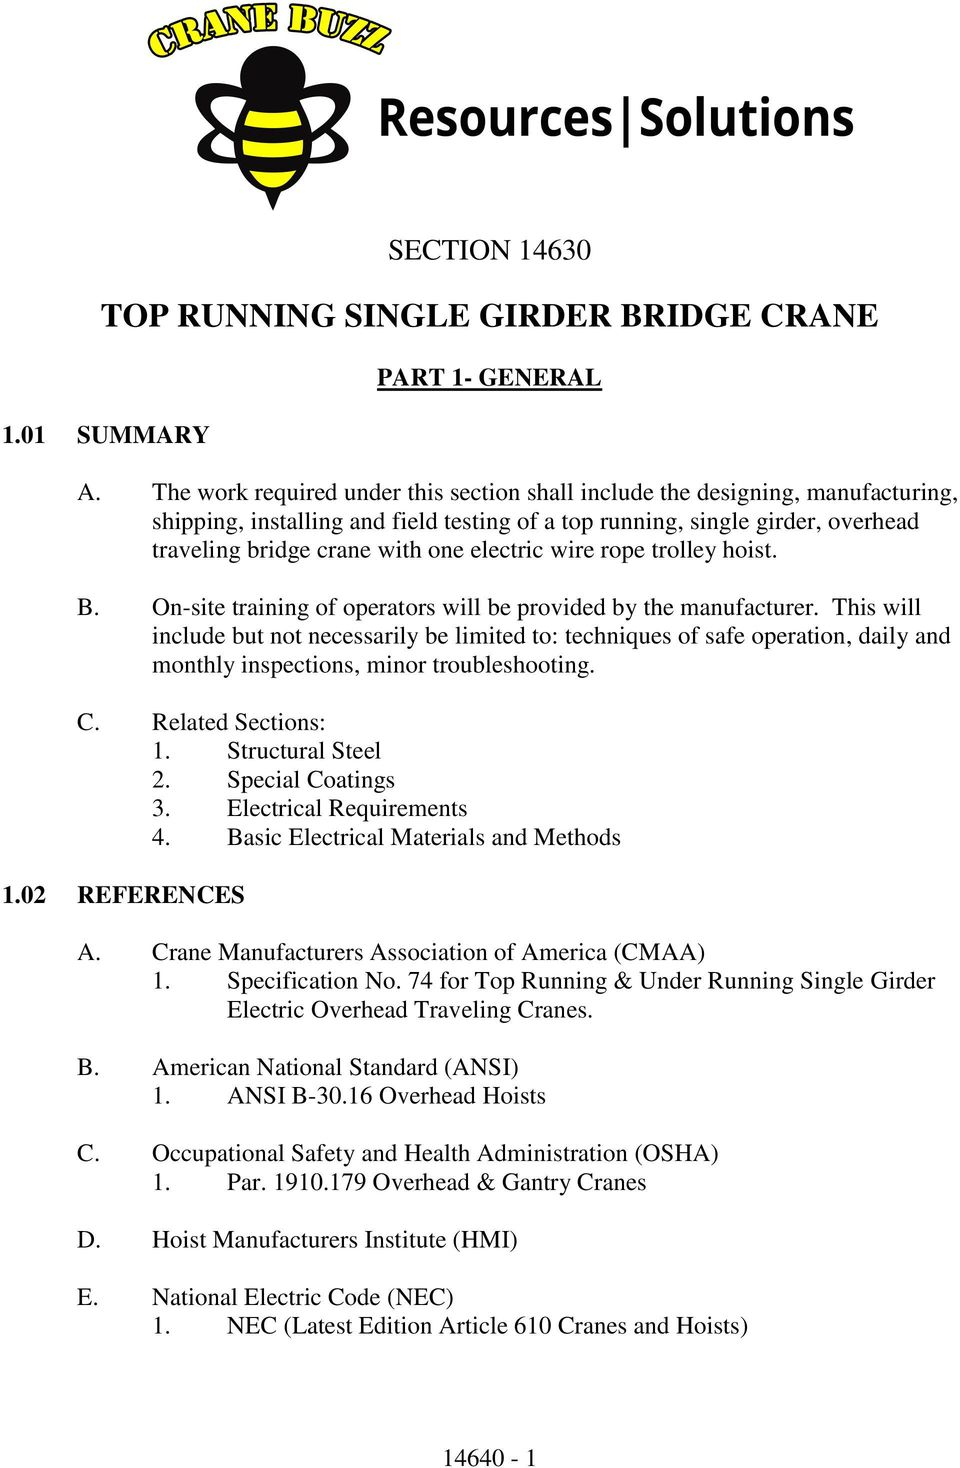 Top Running Single Girder Bridge Crane Pdf 3 Ton Yale Hoist Wiring Diagram For Electric Wire Rope Trolley B On Site Training Of Operators Will Be